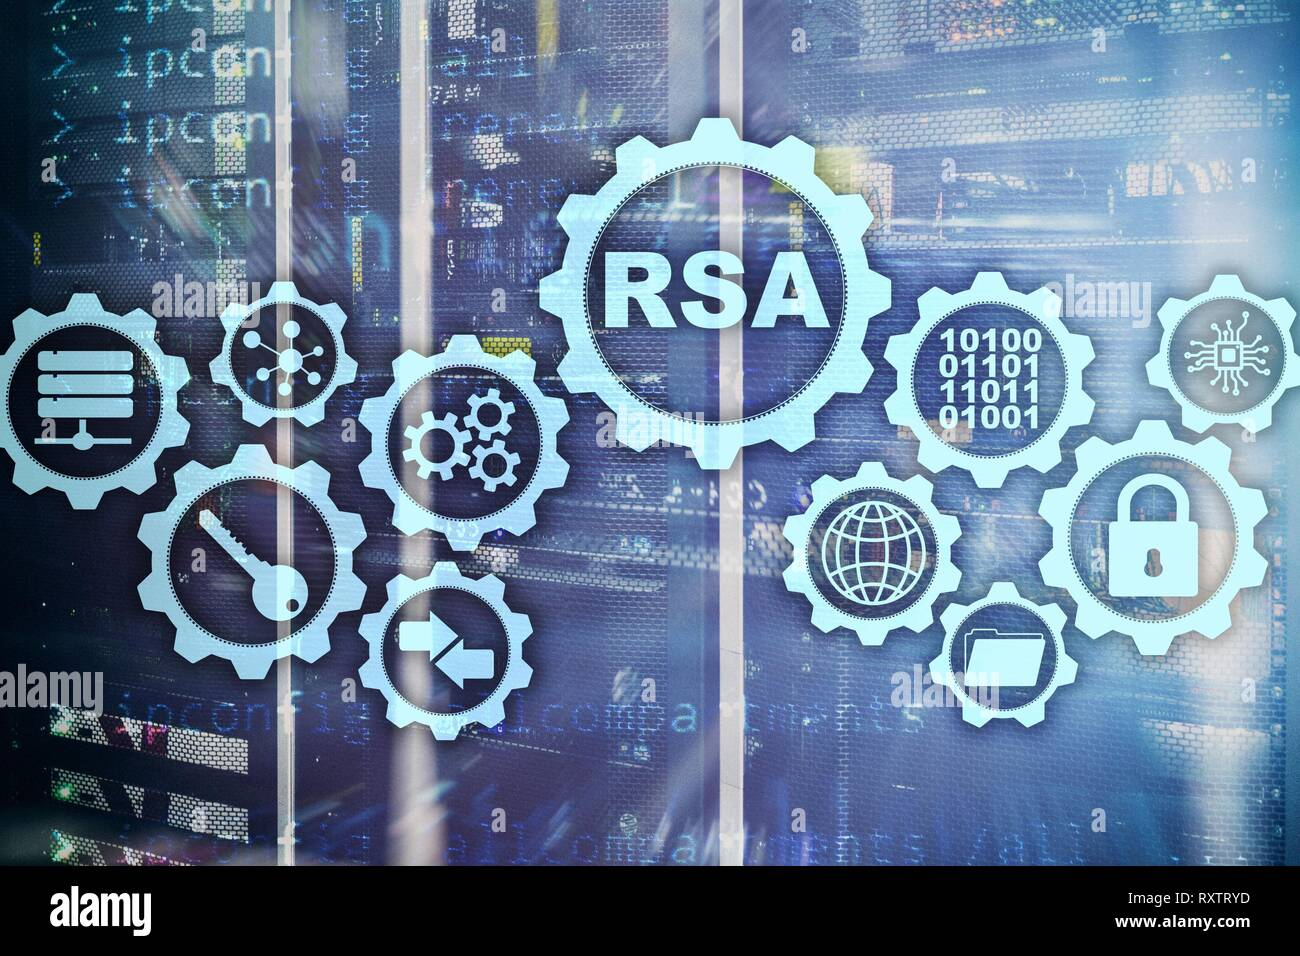 RSA. Rivest Shamir Adleman cryptosystem. Cryptography and Network Security. - Stock Image